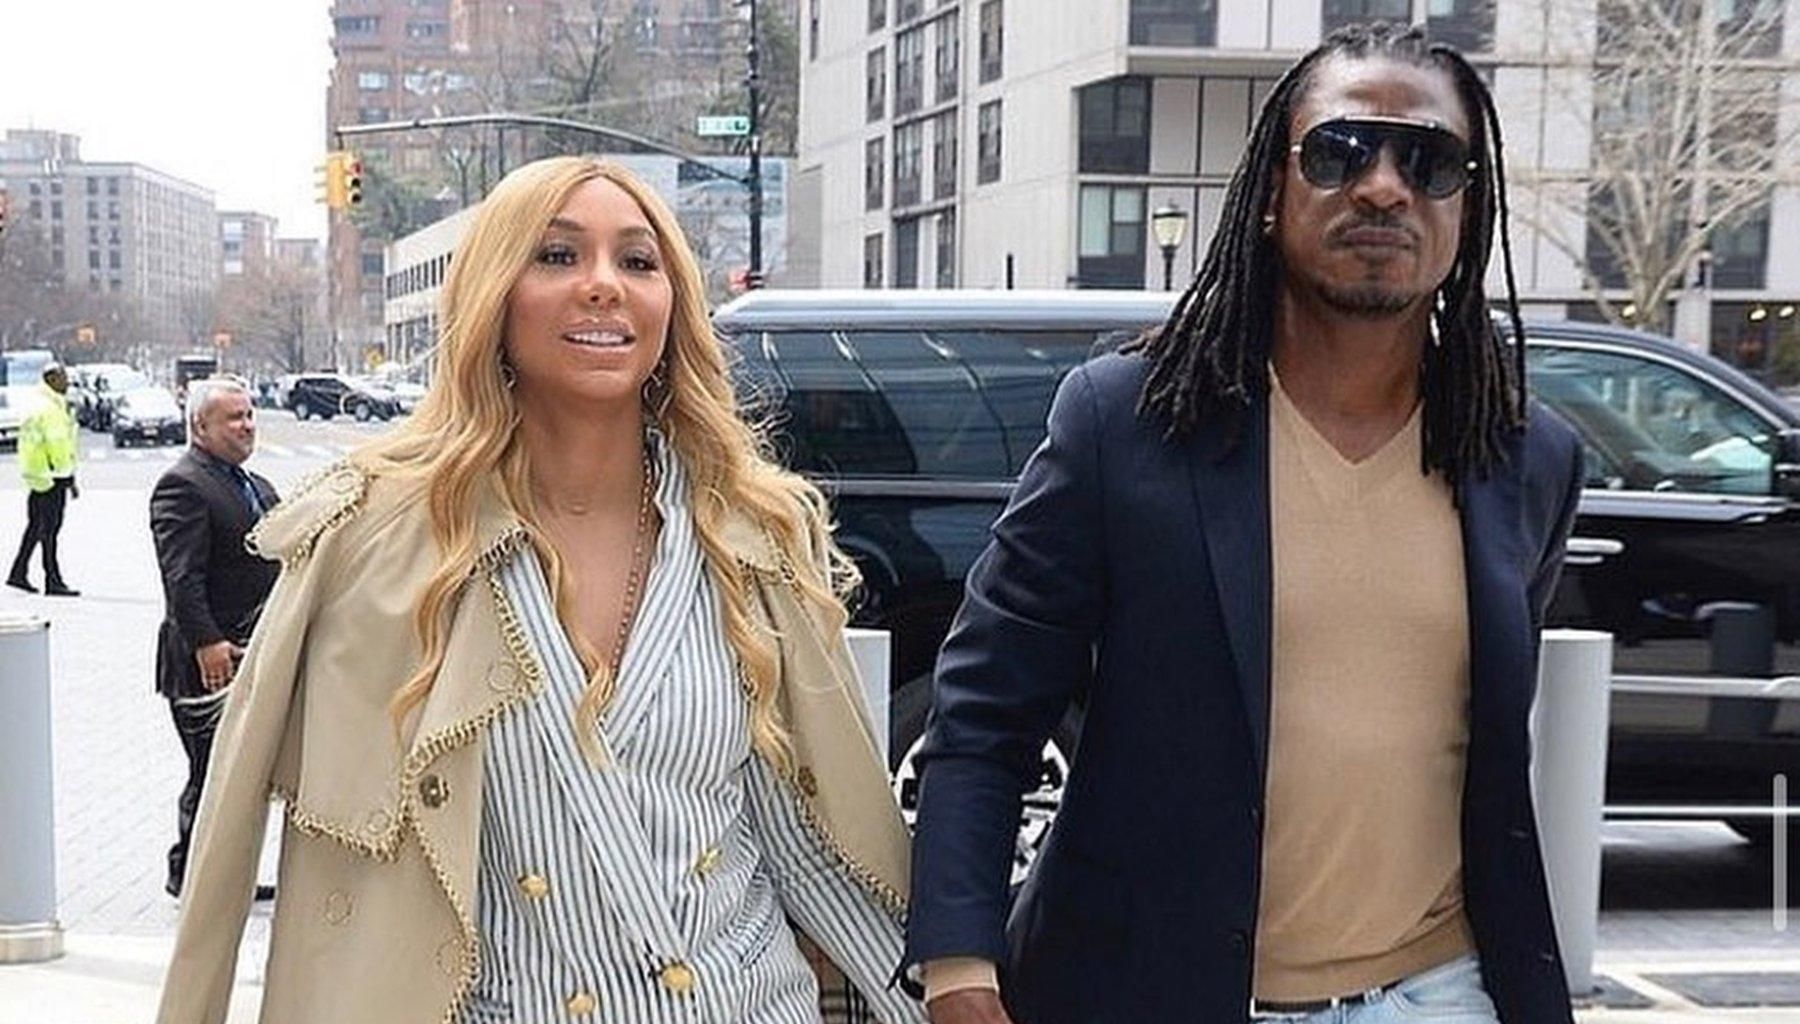 Tamar Braxton Calls David Adefeso Her 'Husband' And Fans Go Crazy With Excitement